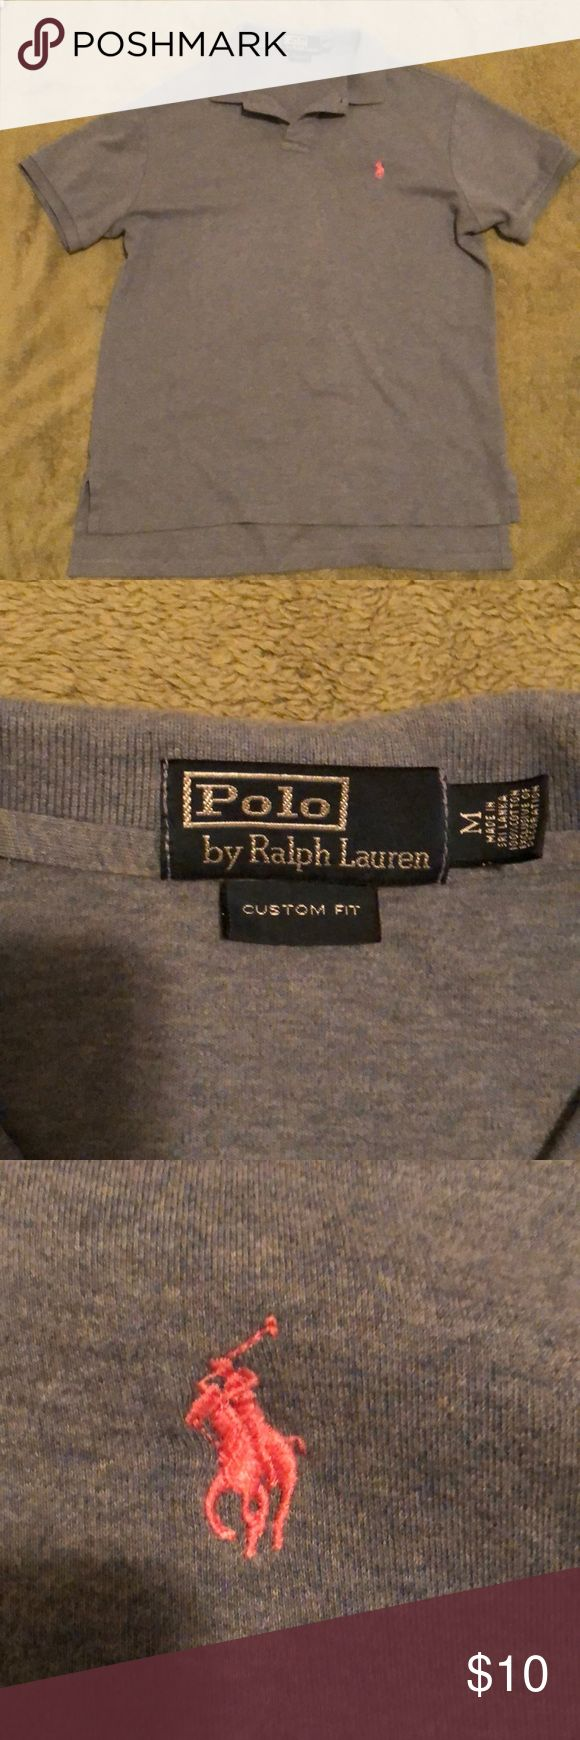 Polo Ralph Lauren Custom Slim fit Polo Shirt Fits true to size Custom Slim Fit: offers a trim, modern silhouette Ribbed polo collar, two-button placket Short sleeves with ribbed armbands, designed to hug the shoulder and bicep Tennis tail: uneven hem that helps to keep the shirt in place when tucked in Polo by Ralph Lauren Shirts Polos